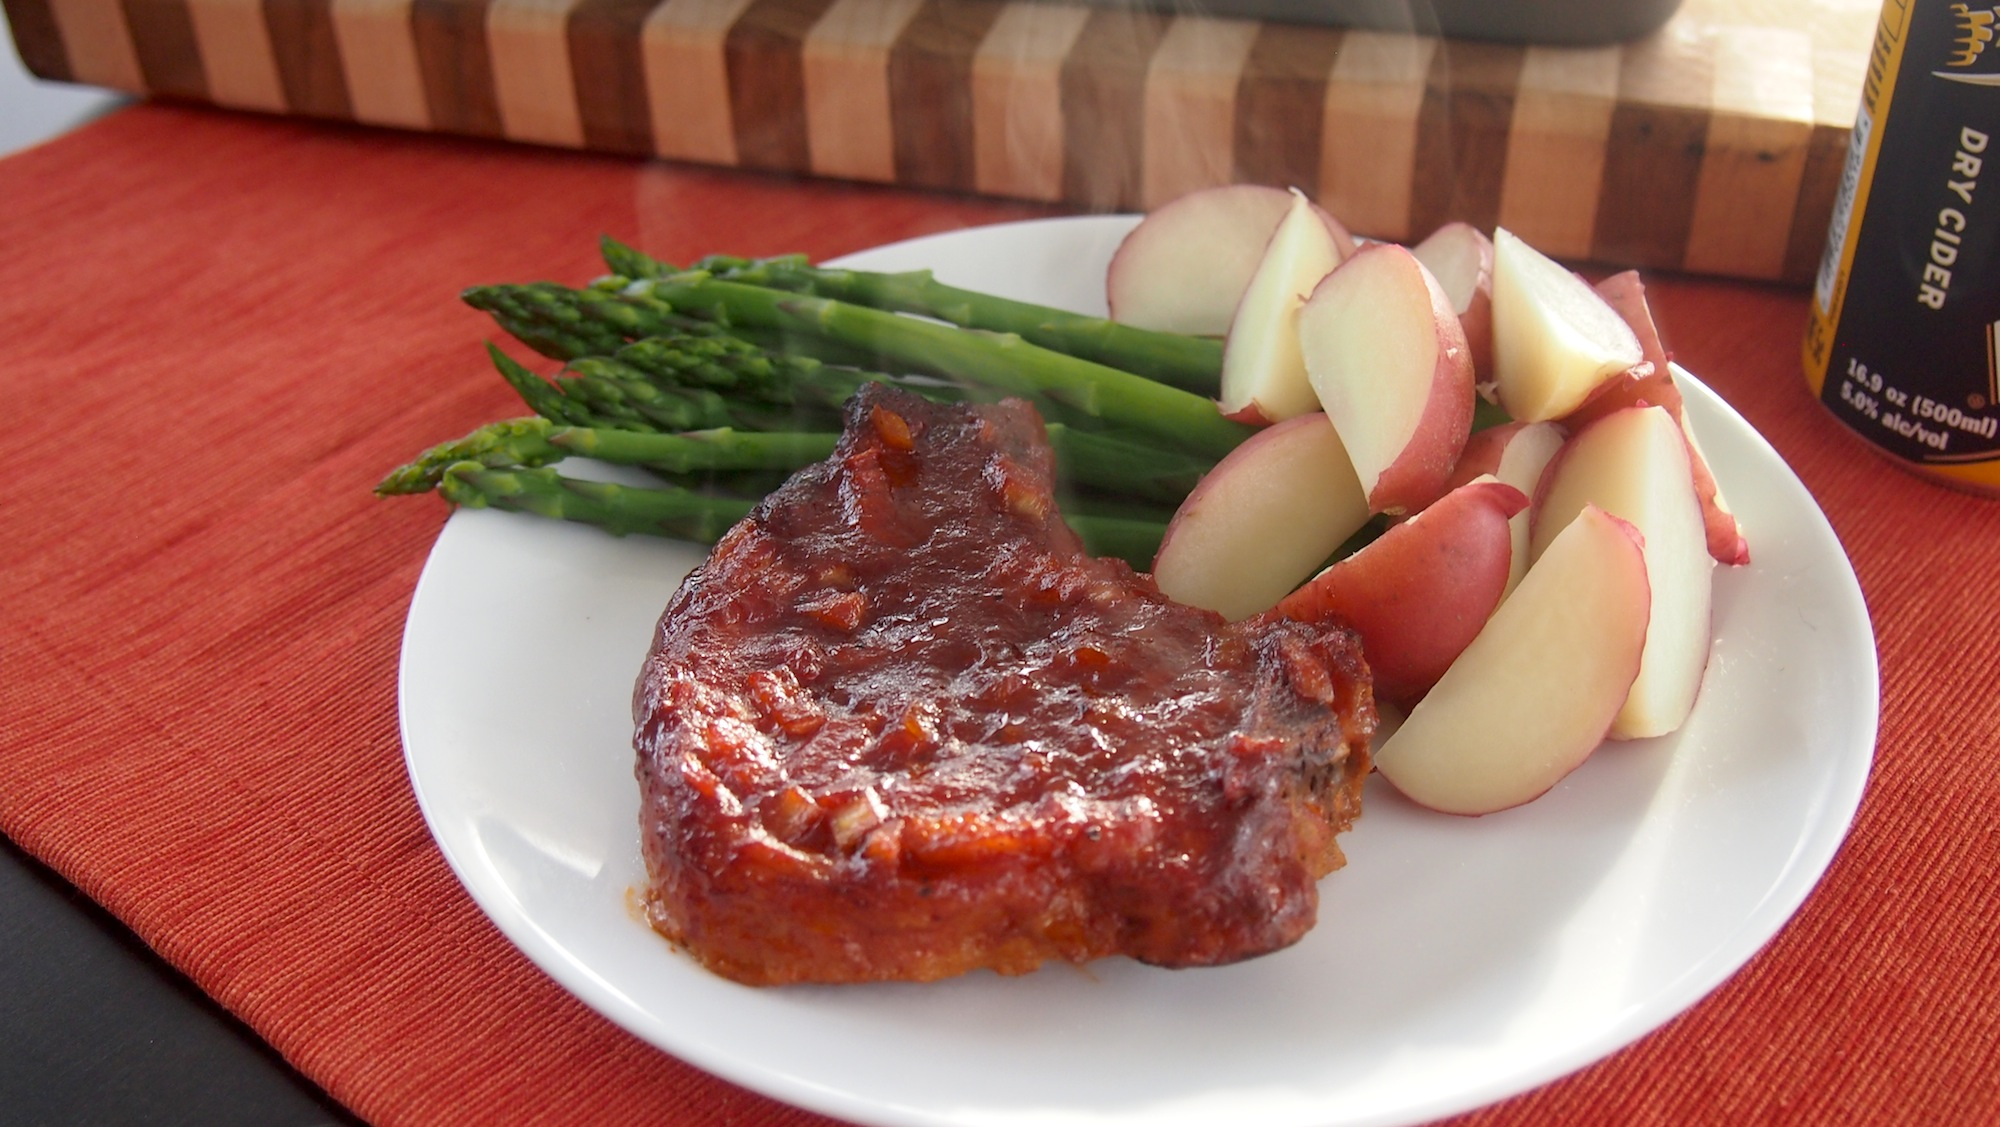 Barbecue pork chops served with asparagus and red new potatoes.